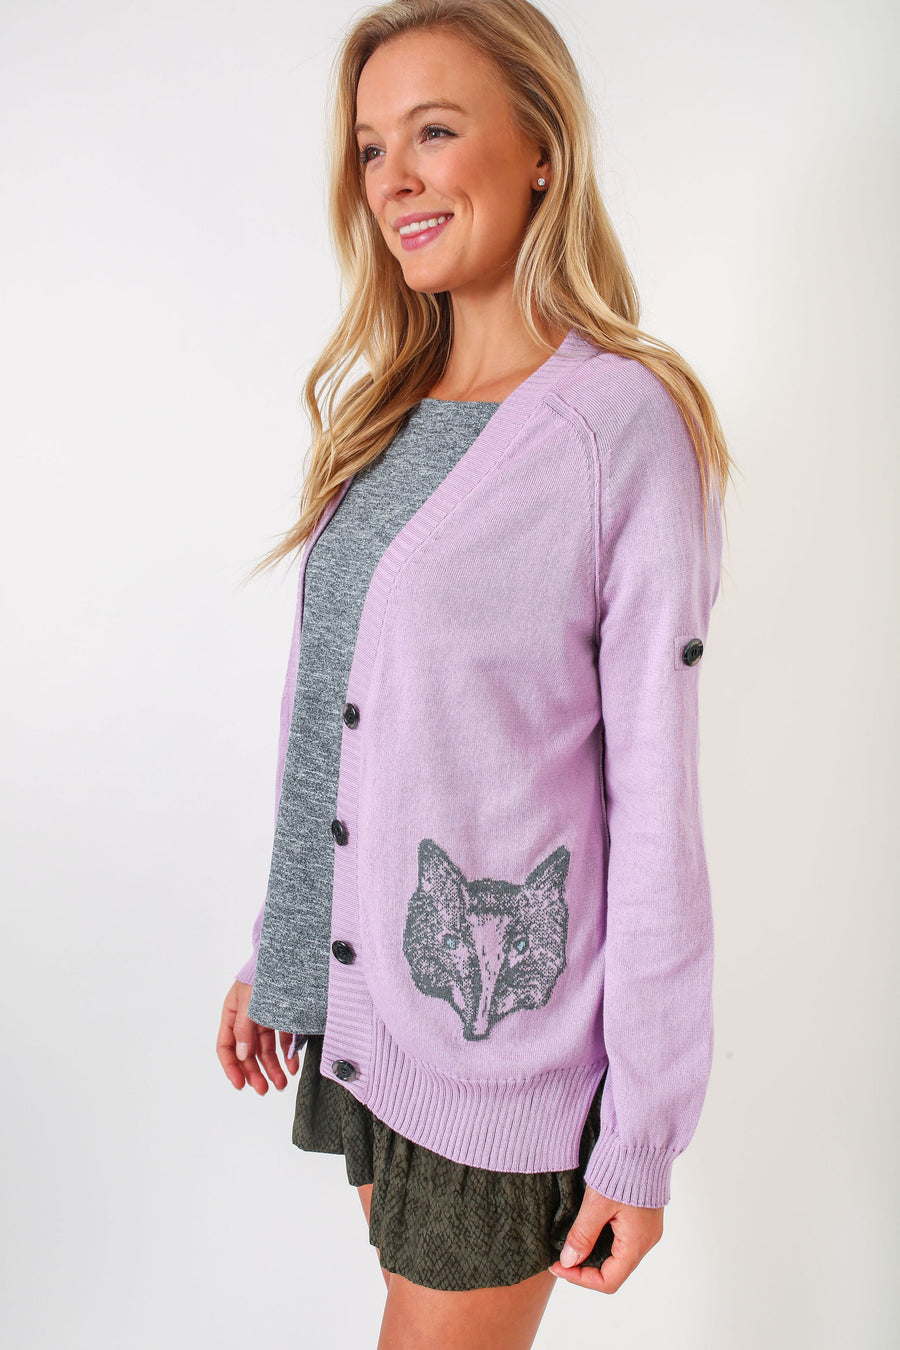 WHITMAN SWEATER NICK'S LILAC